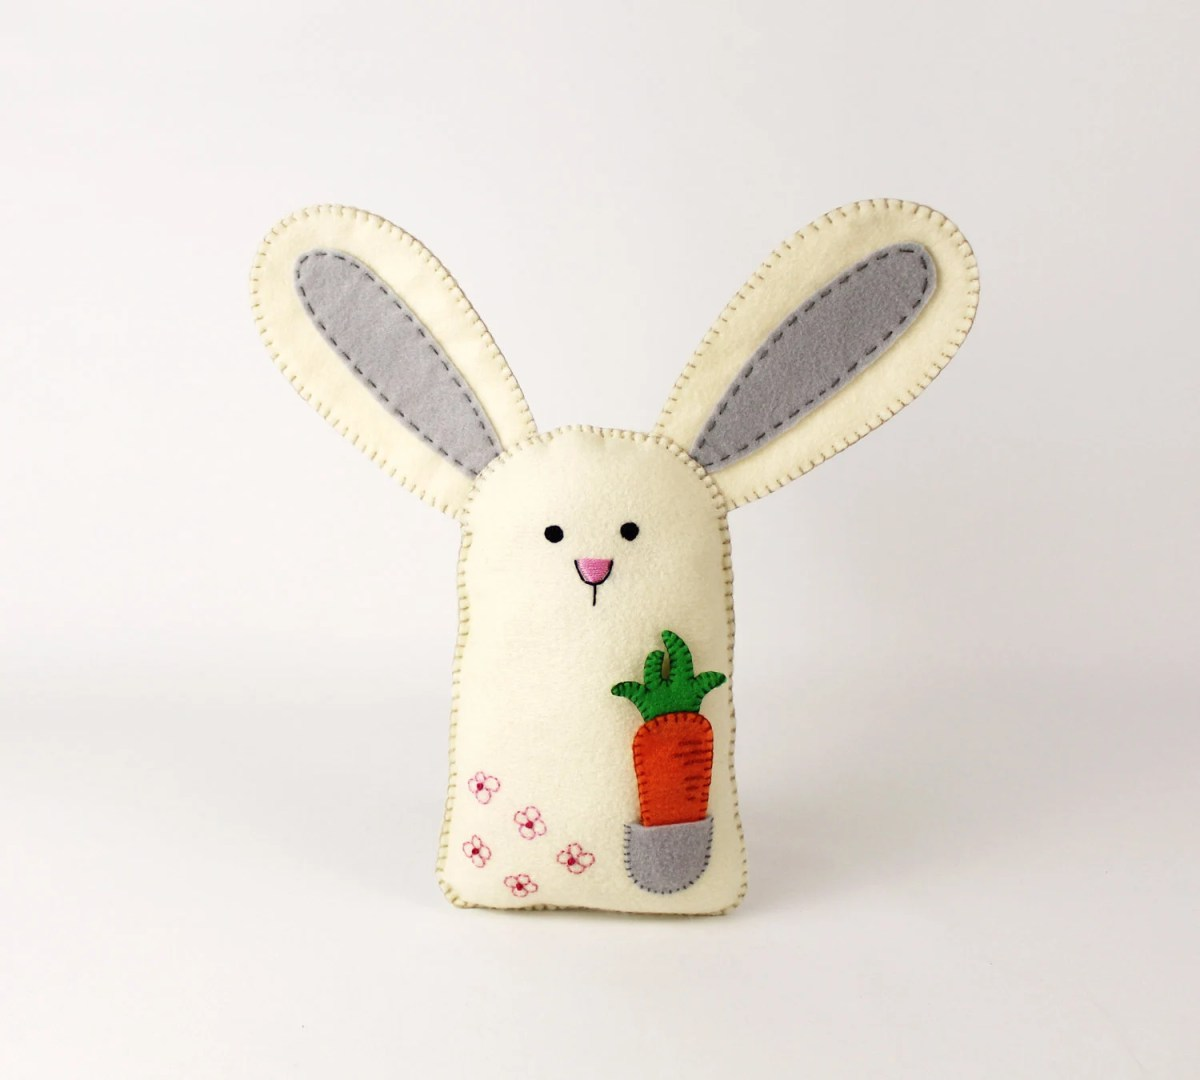 Bunny Sewing Pattern, Felt Rabbit Hand Sewing Pattern with Carrot, Embroidery for Beginners